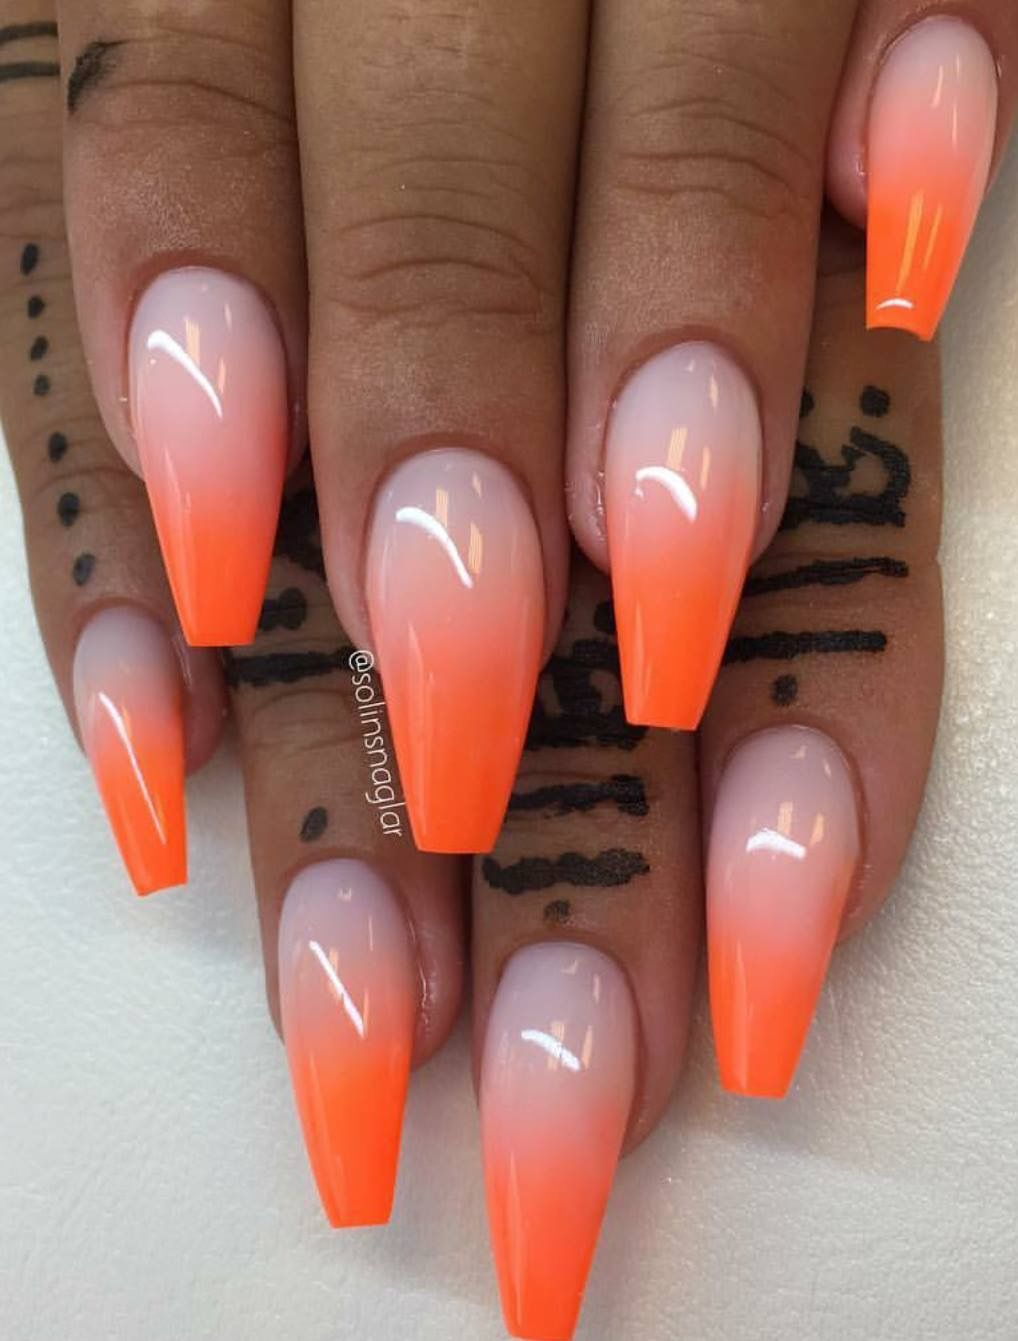 Pin by Khandella Mignott on Nail Design and Art | Ombre ...